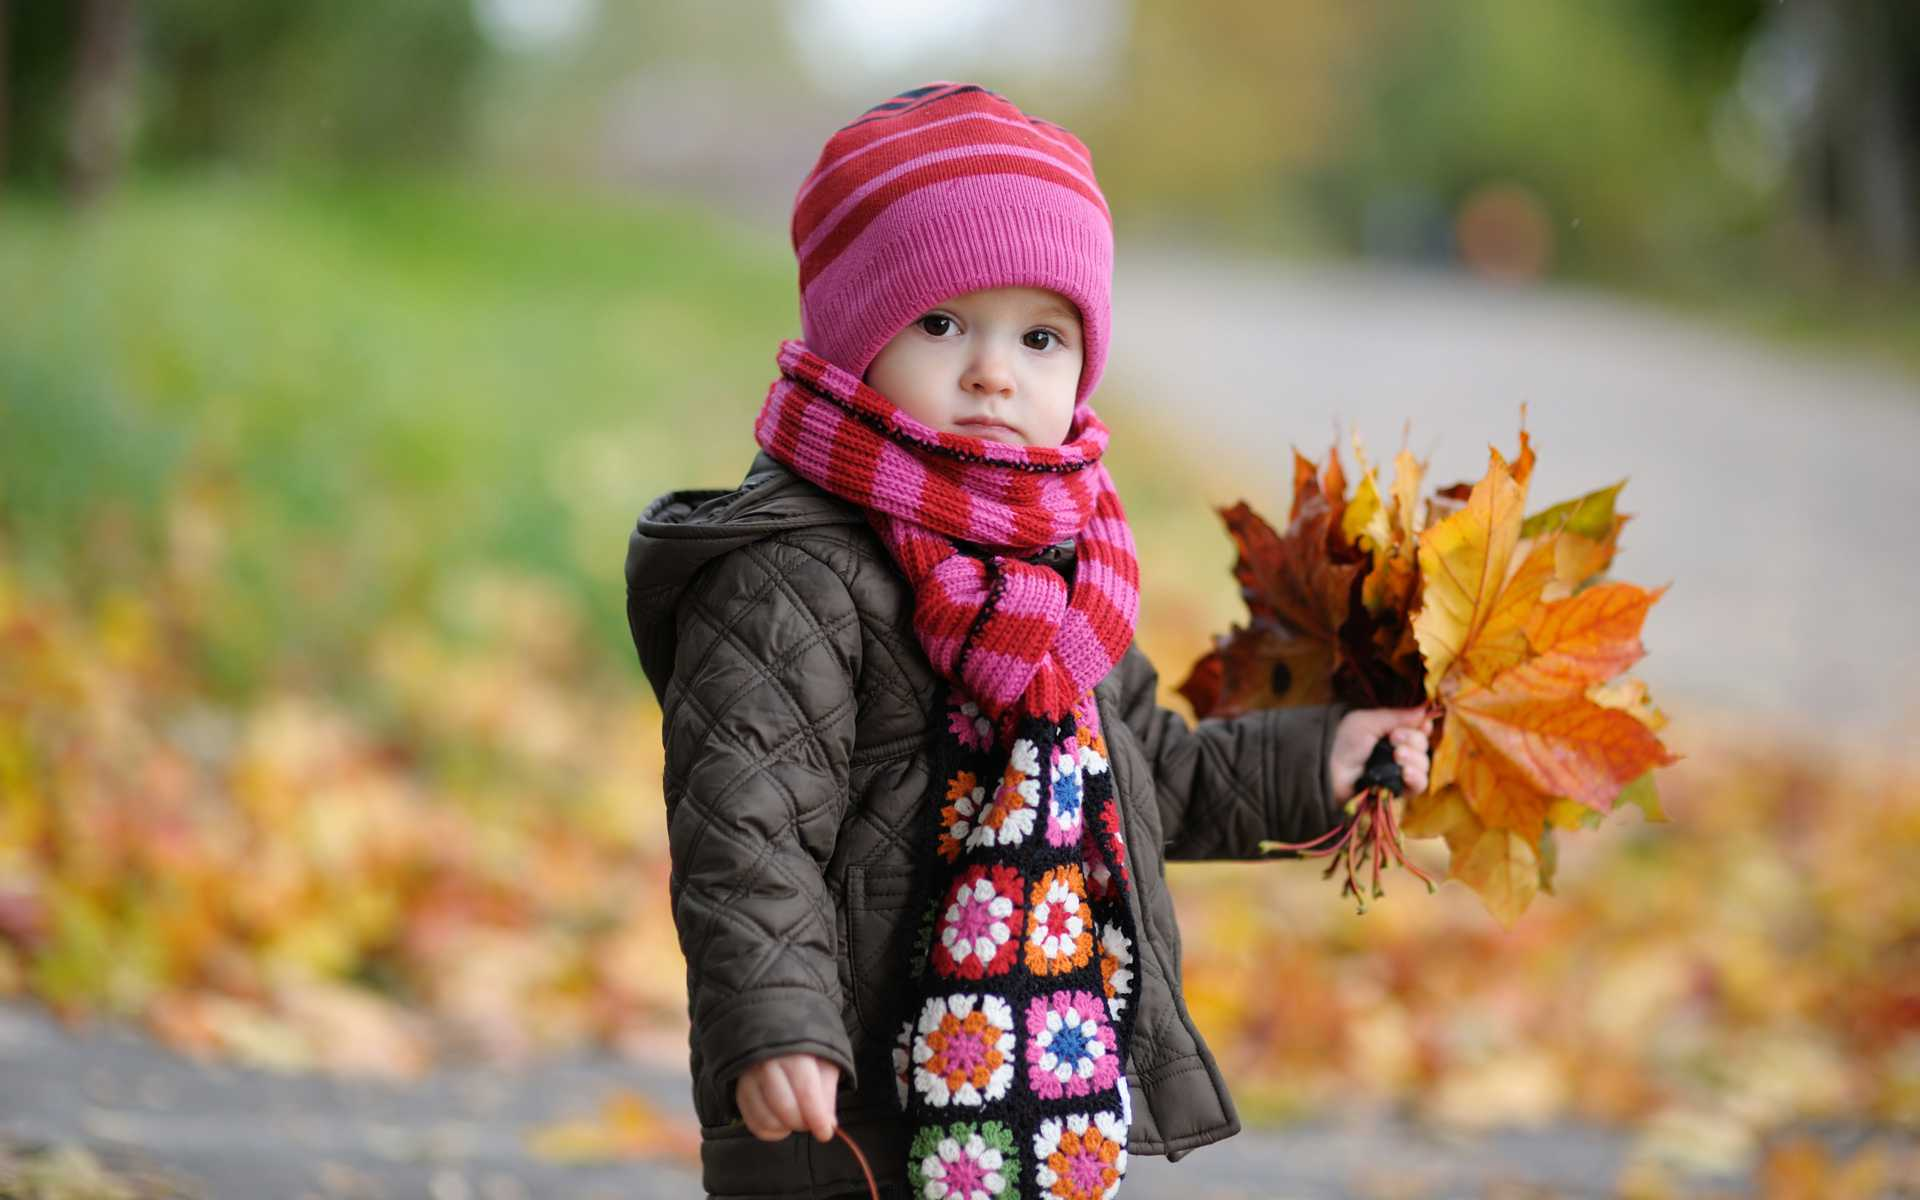 http://www.cepapkindir.com/uploads/posts/2013-01/1357240195_cute_baby_in_autumn-wide1.jpg